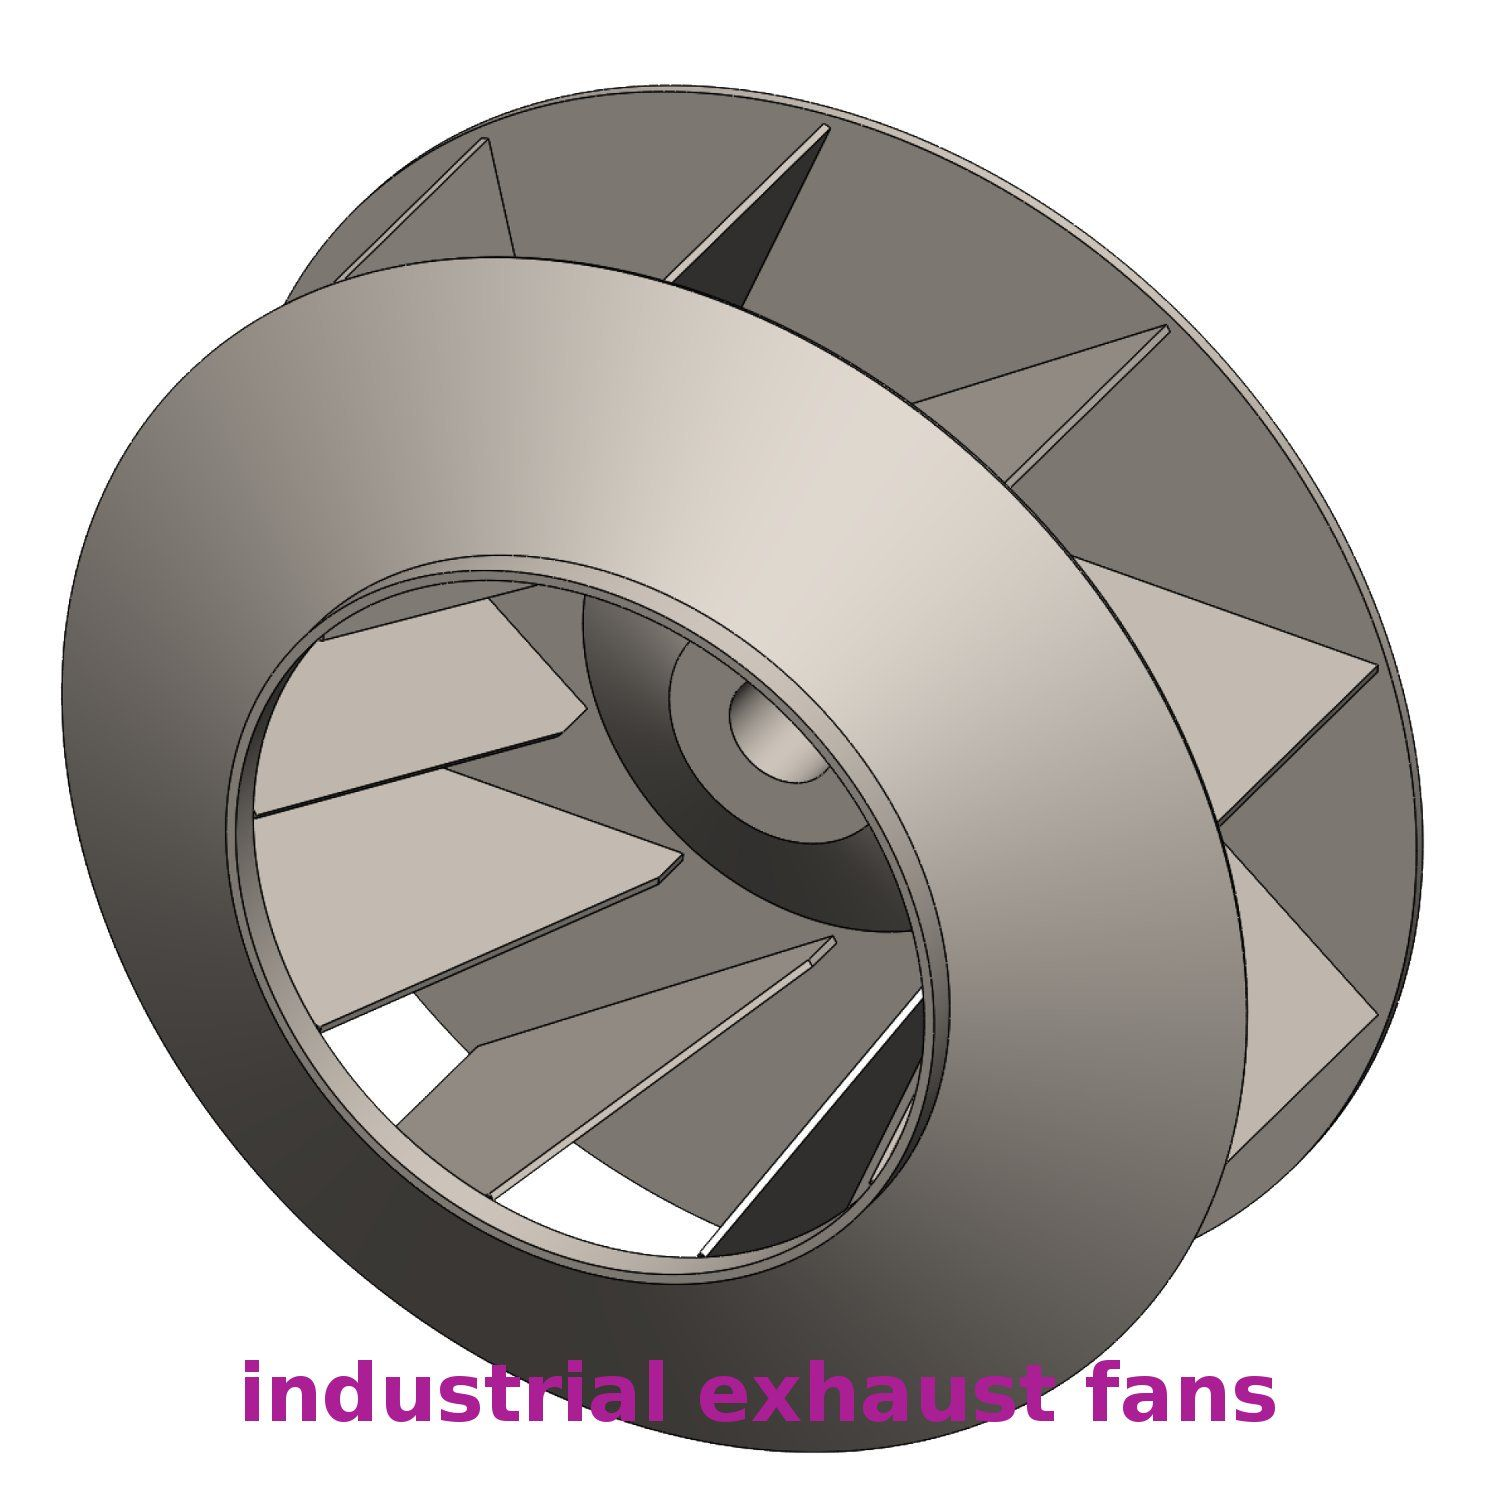 Visit here for Industrial Exhaust Fans manufacturers